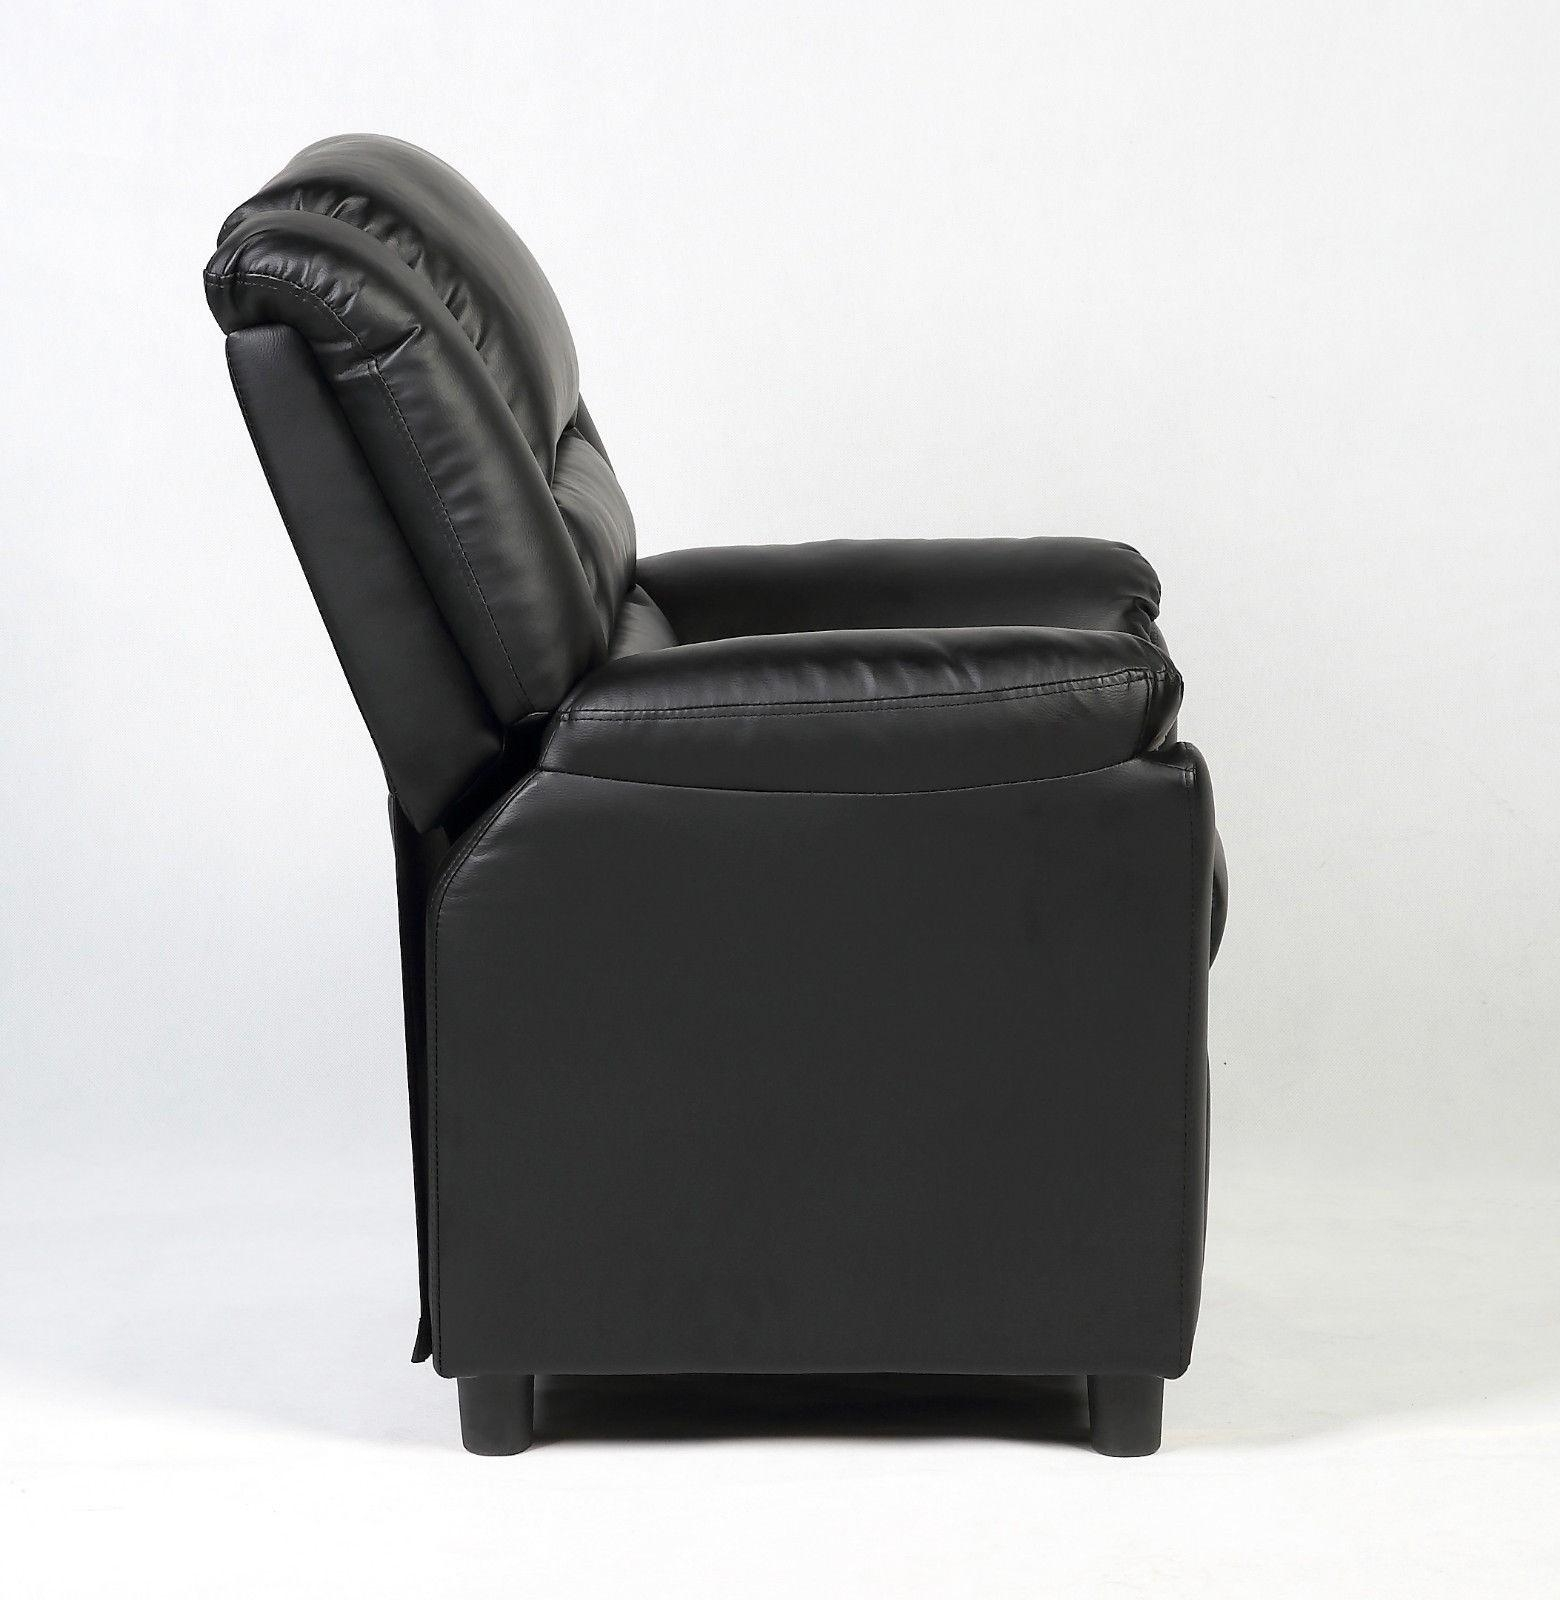 Ergonomic Kids Sofa Manual Recliner – Arm Chairs, Recliners With Regard To Ergonomic Sofas And Chairs (View 13 of 20)